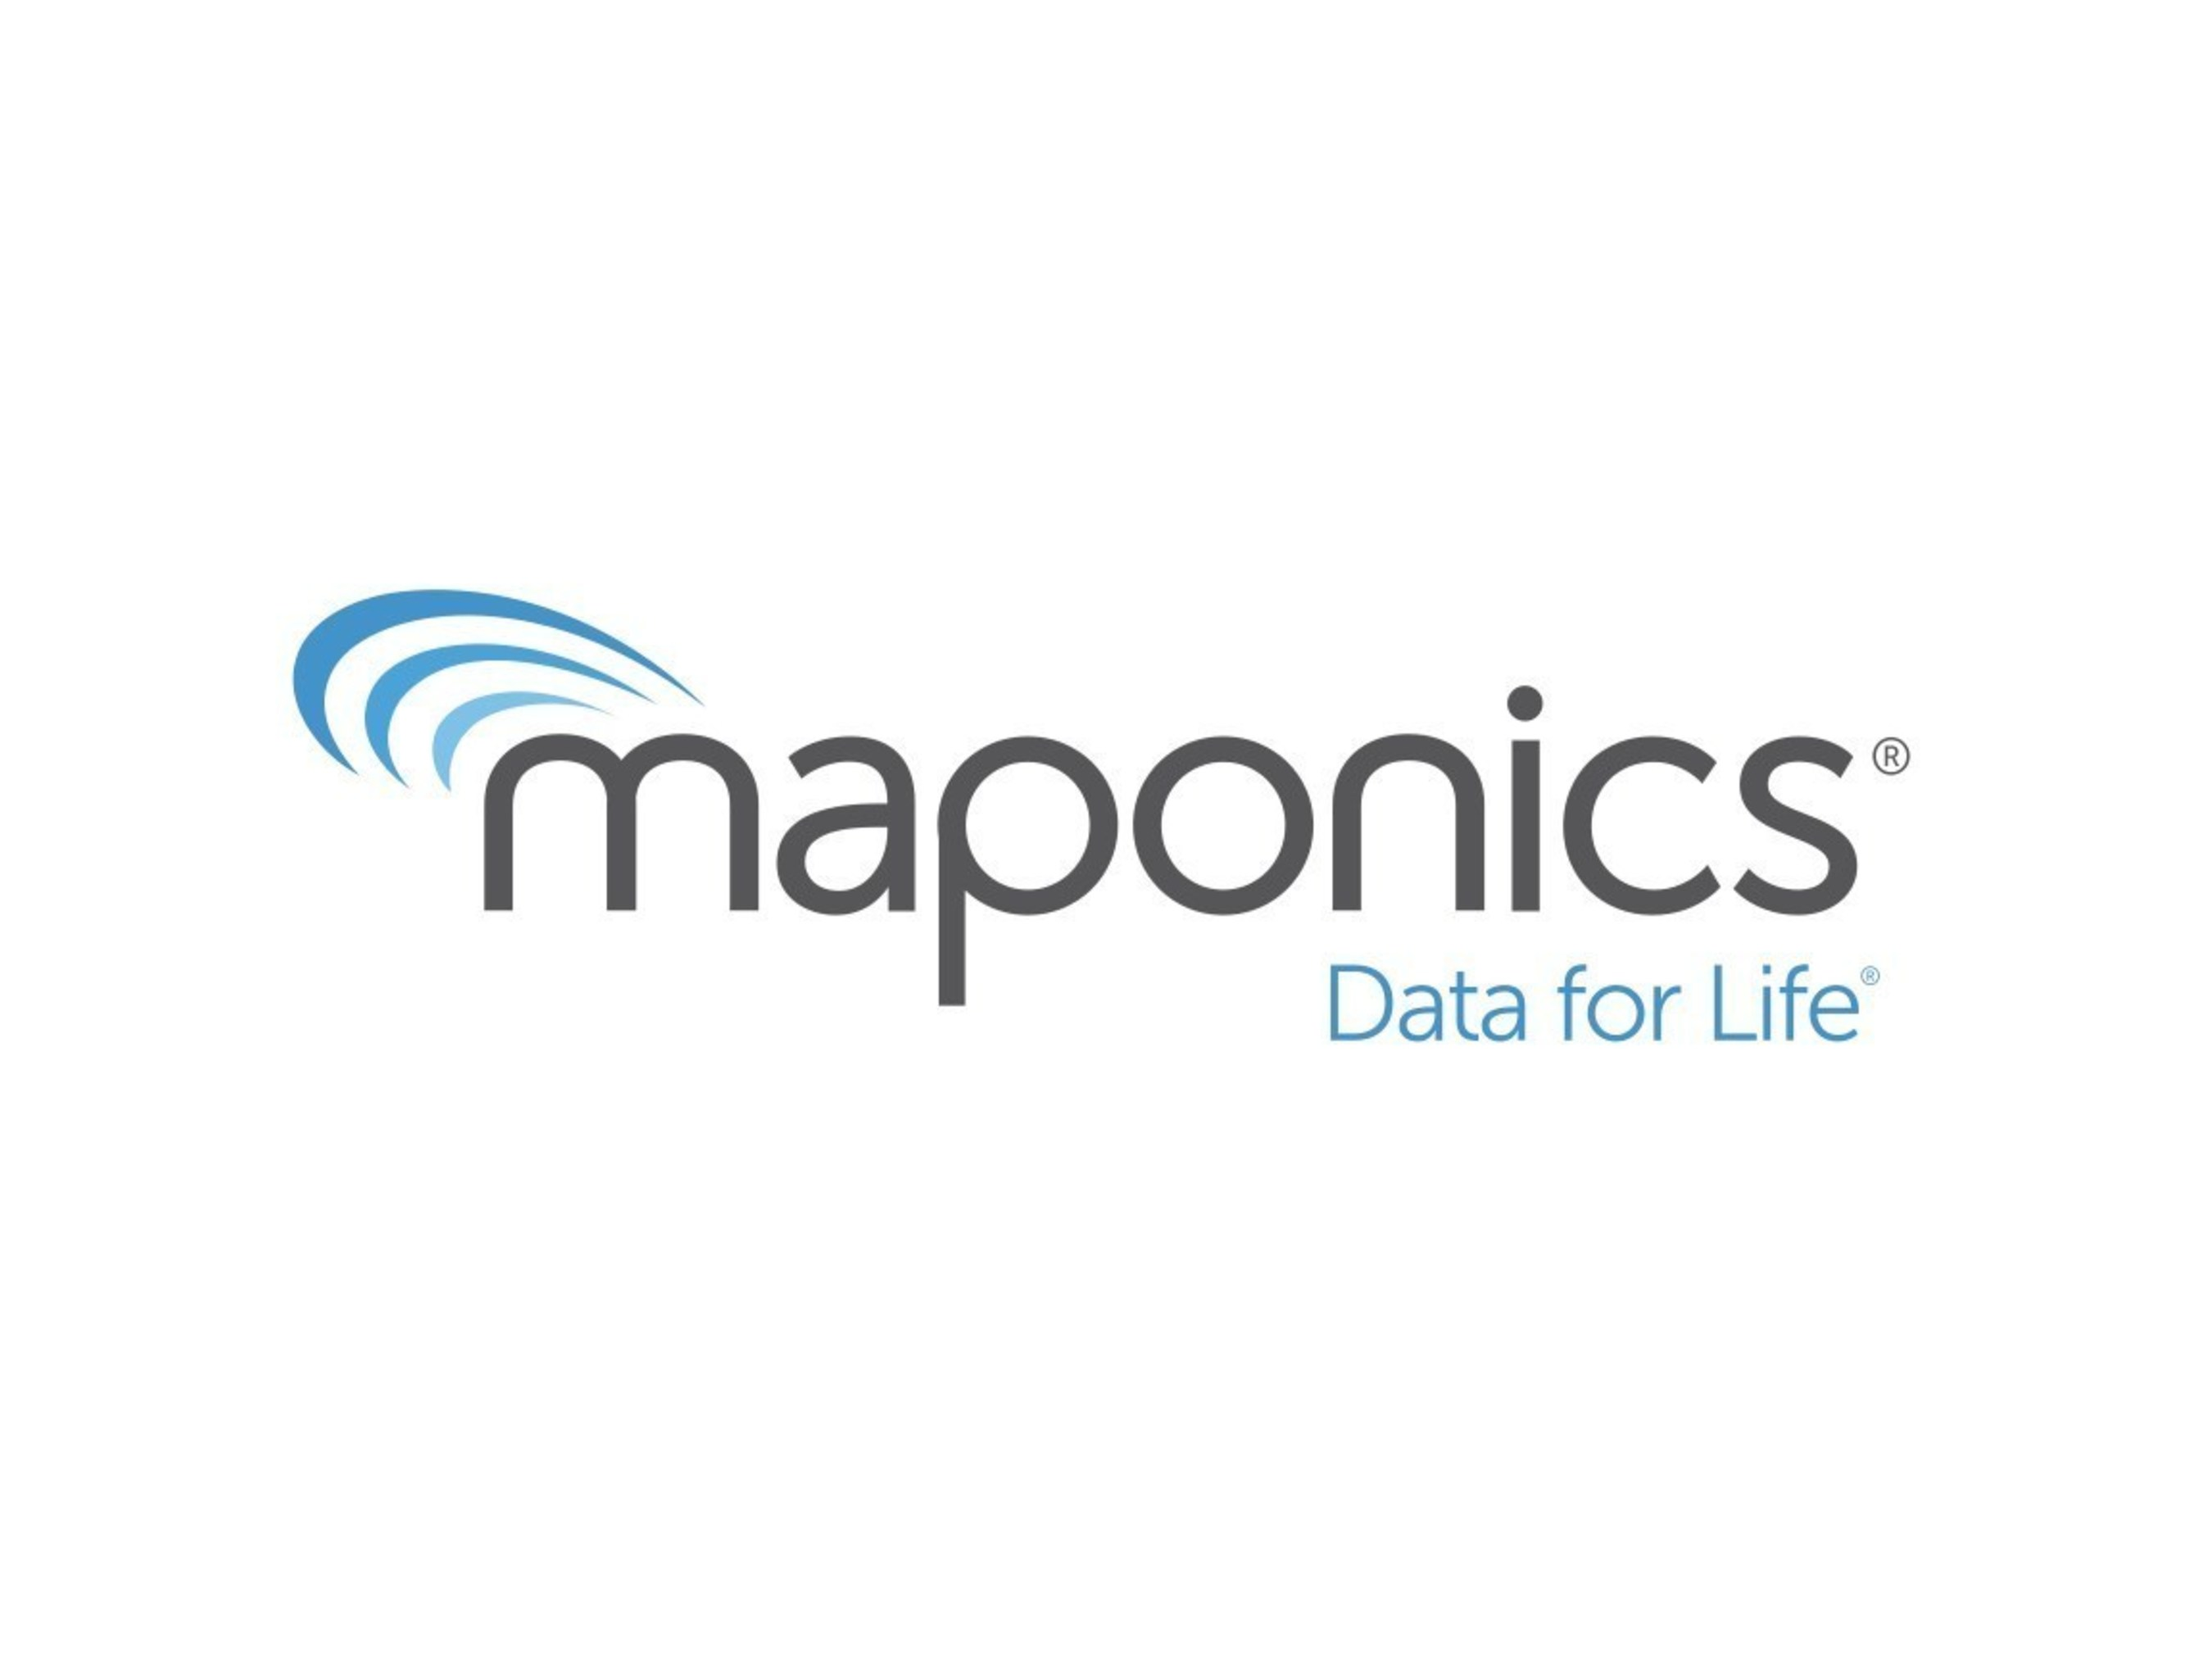 Maponics Reinforces Position in the Spatial Data Industry With the Acquisition of Certain Assets of Urban Mapping, Inc.